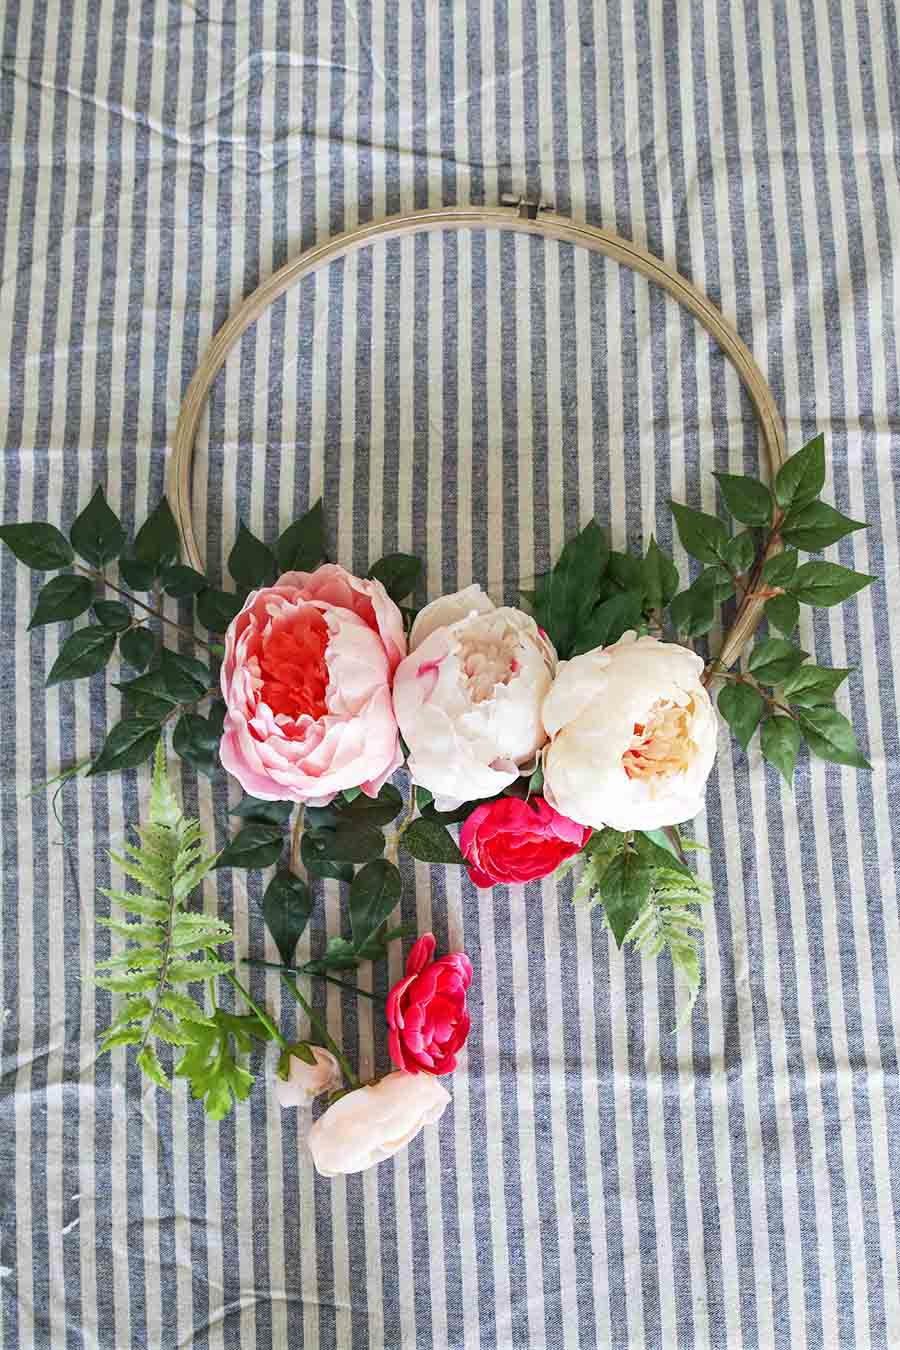 DIY Modern Wreath Tutorial